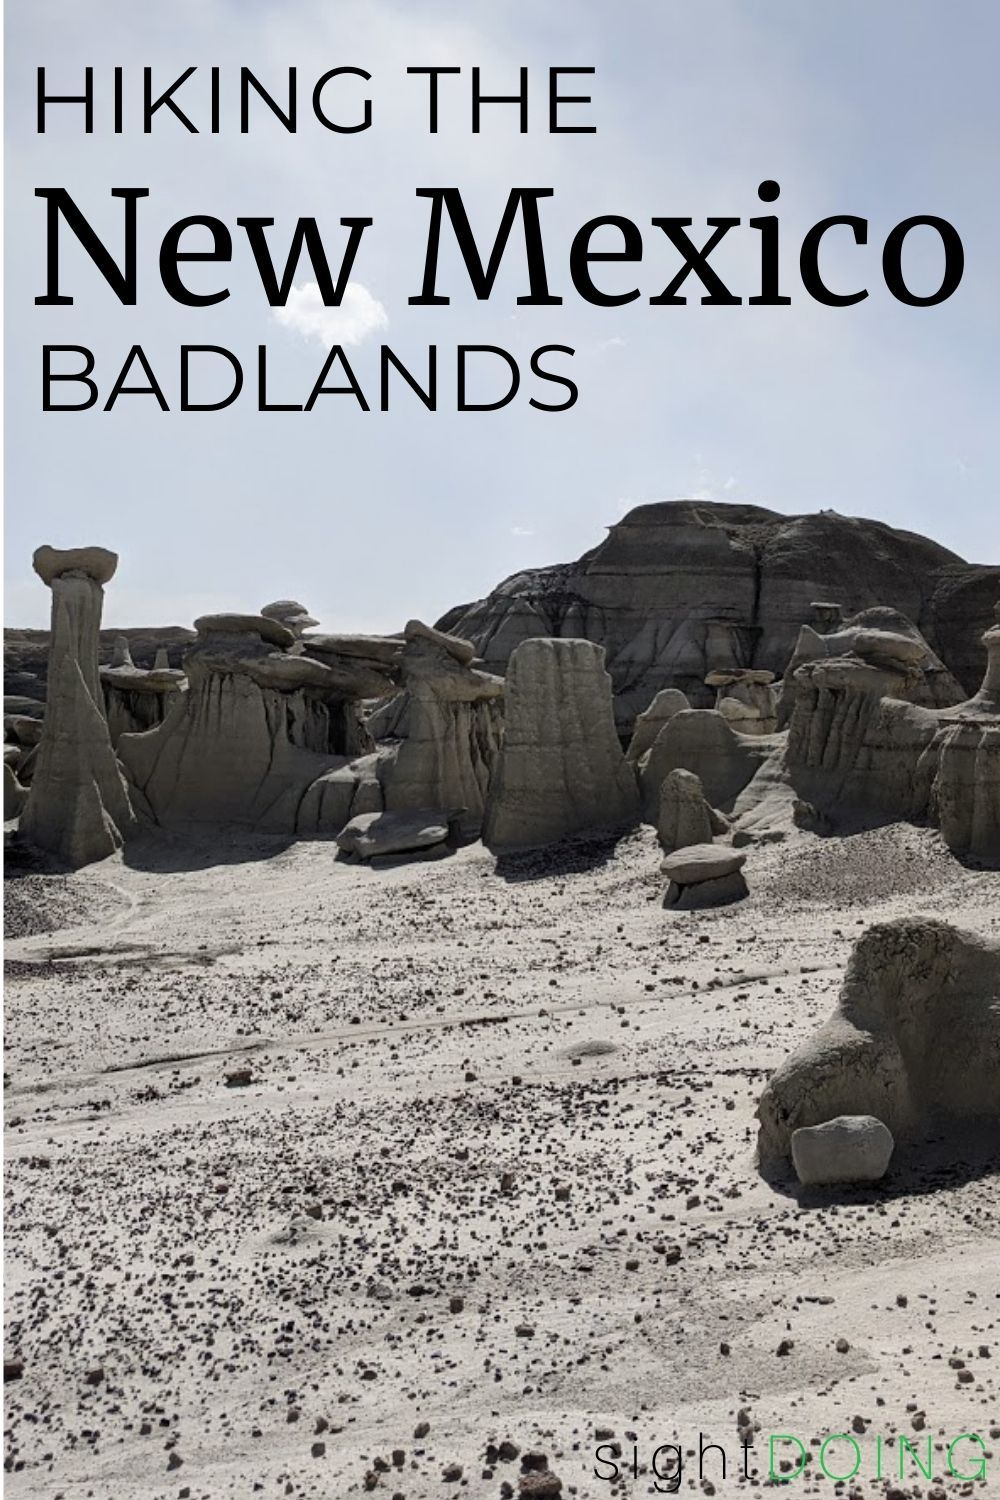 cover new mexico badlands hiking